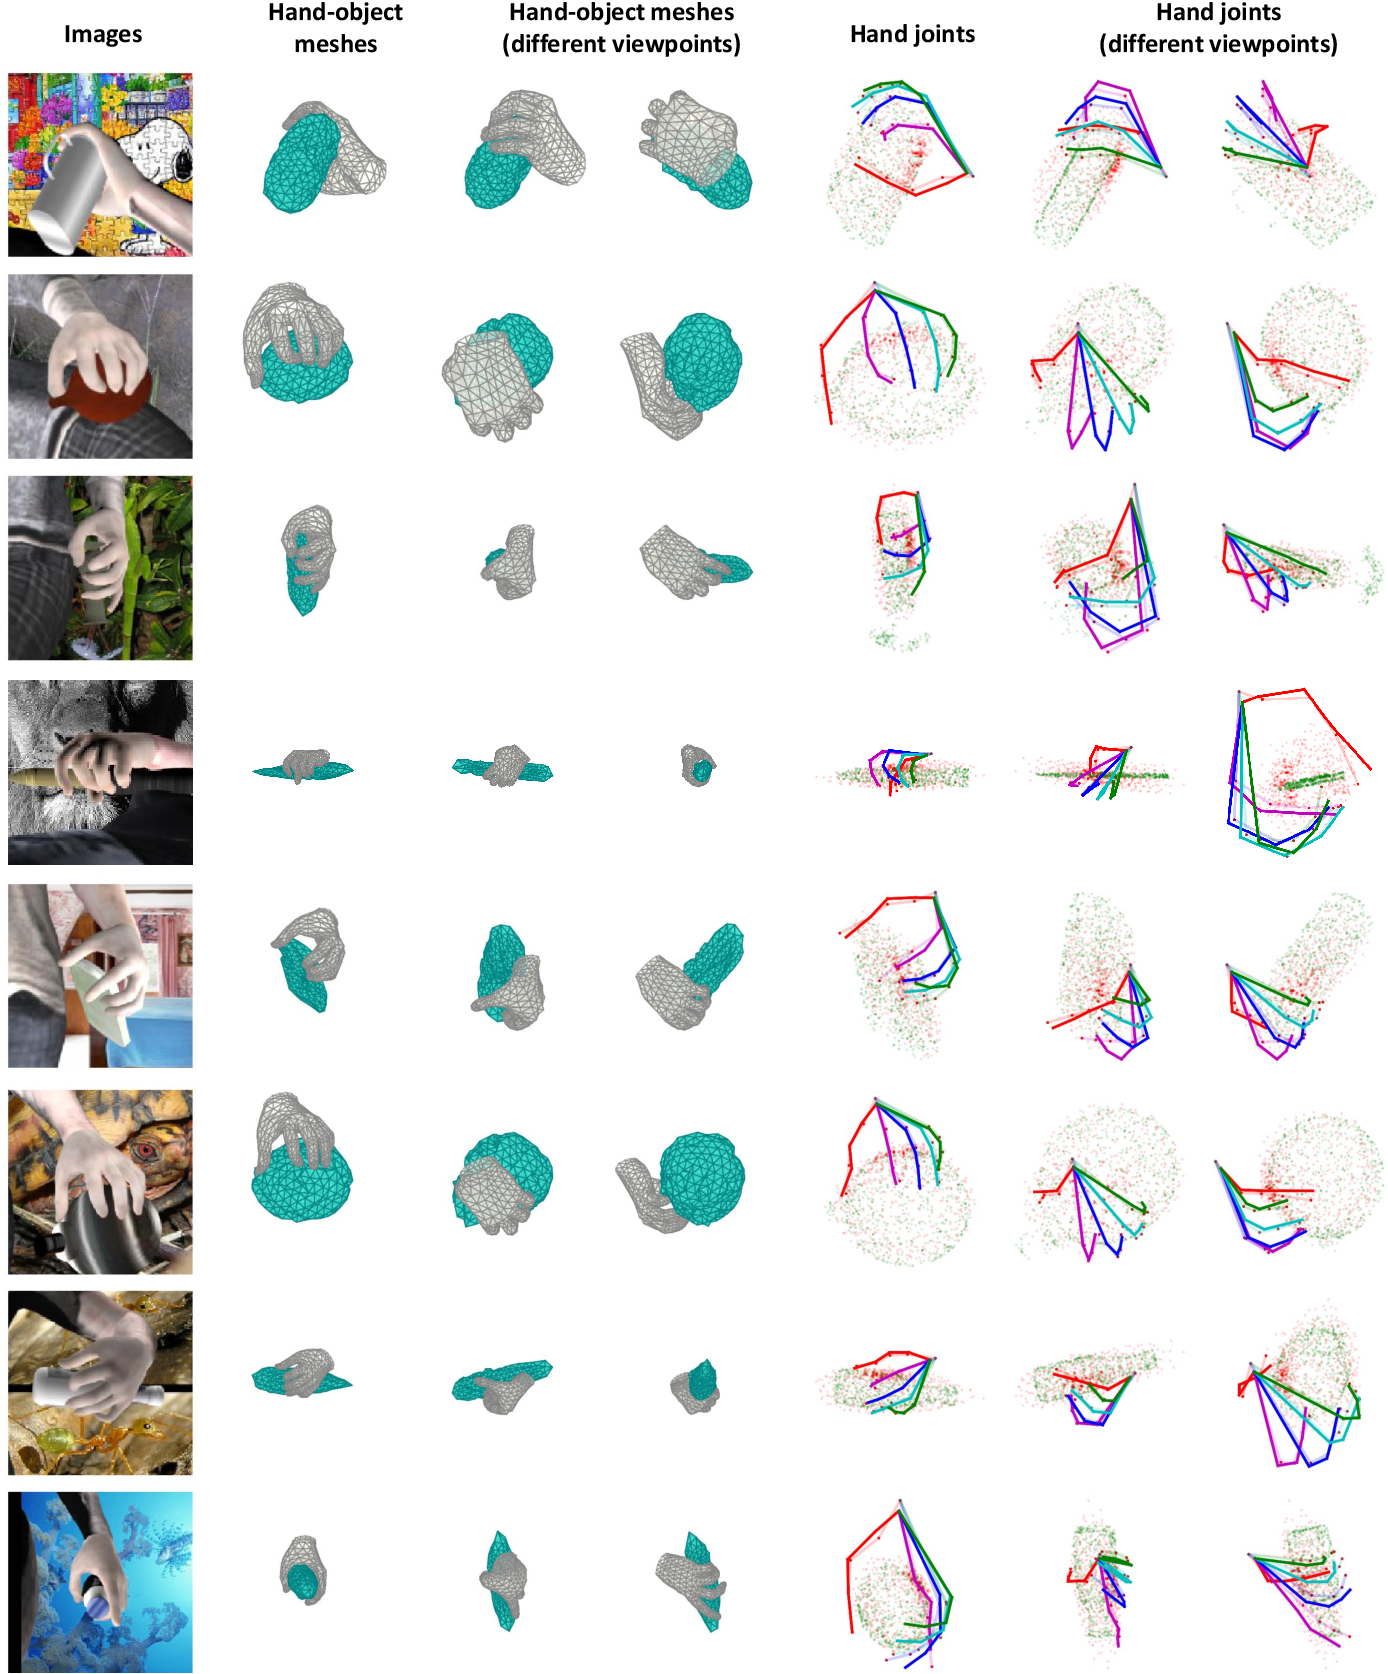 Figure 2 for Joint Hand-object 3D Reconstruction from a Single Image with Cross-branch Feature Fusion